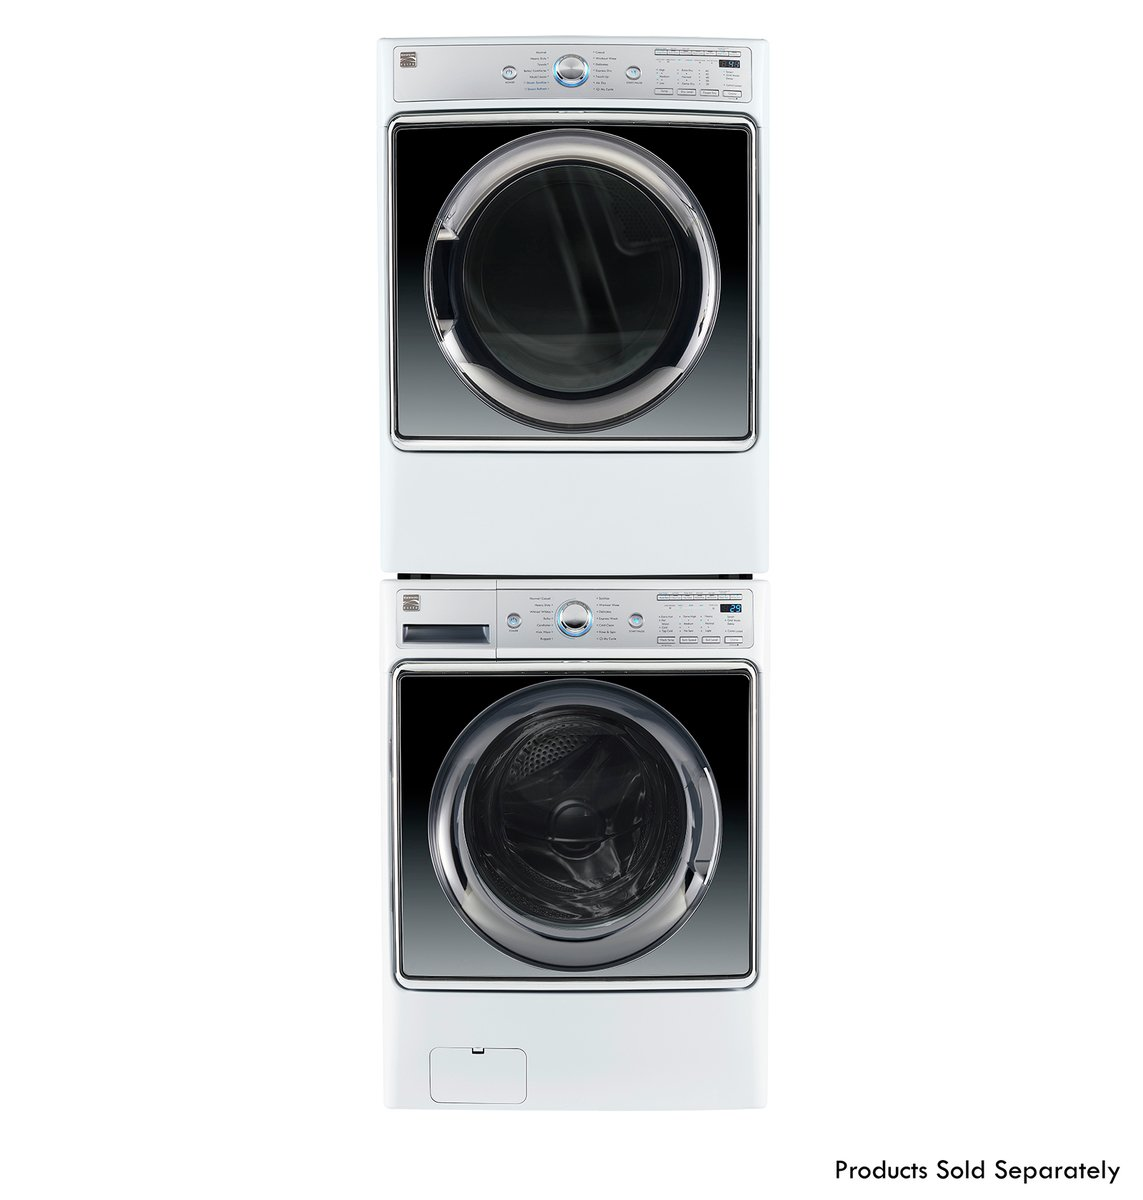 Kenmore Smart 91982 9.0 cu. ft. Gas Dryer with Accela Steam Technology in White - Compatible with Amazon Alexa, includes delivery and hookup (Available in select cities only) by Kenmore (Image #4)